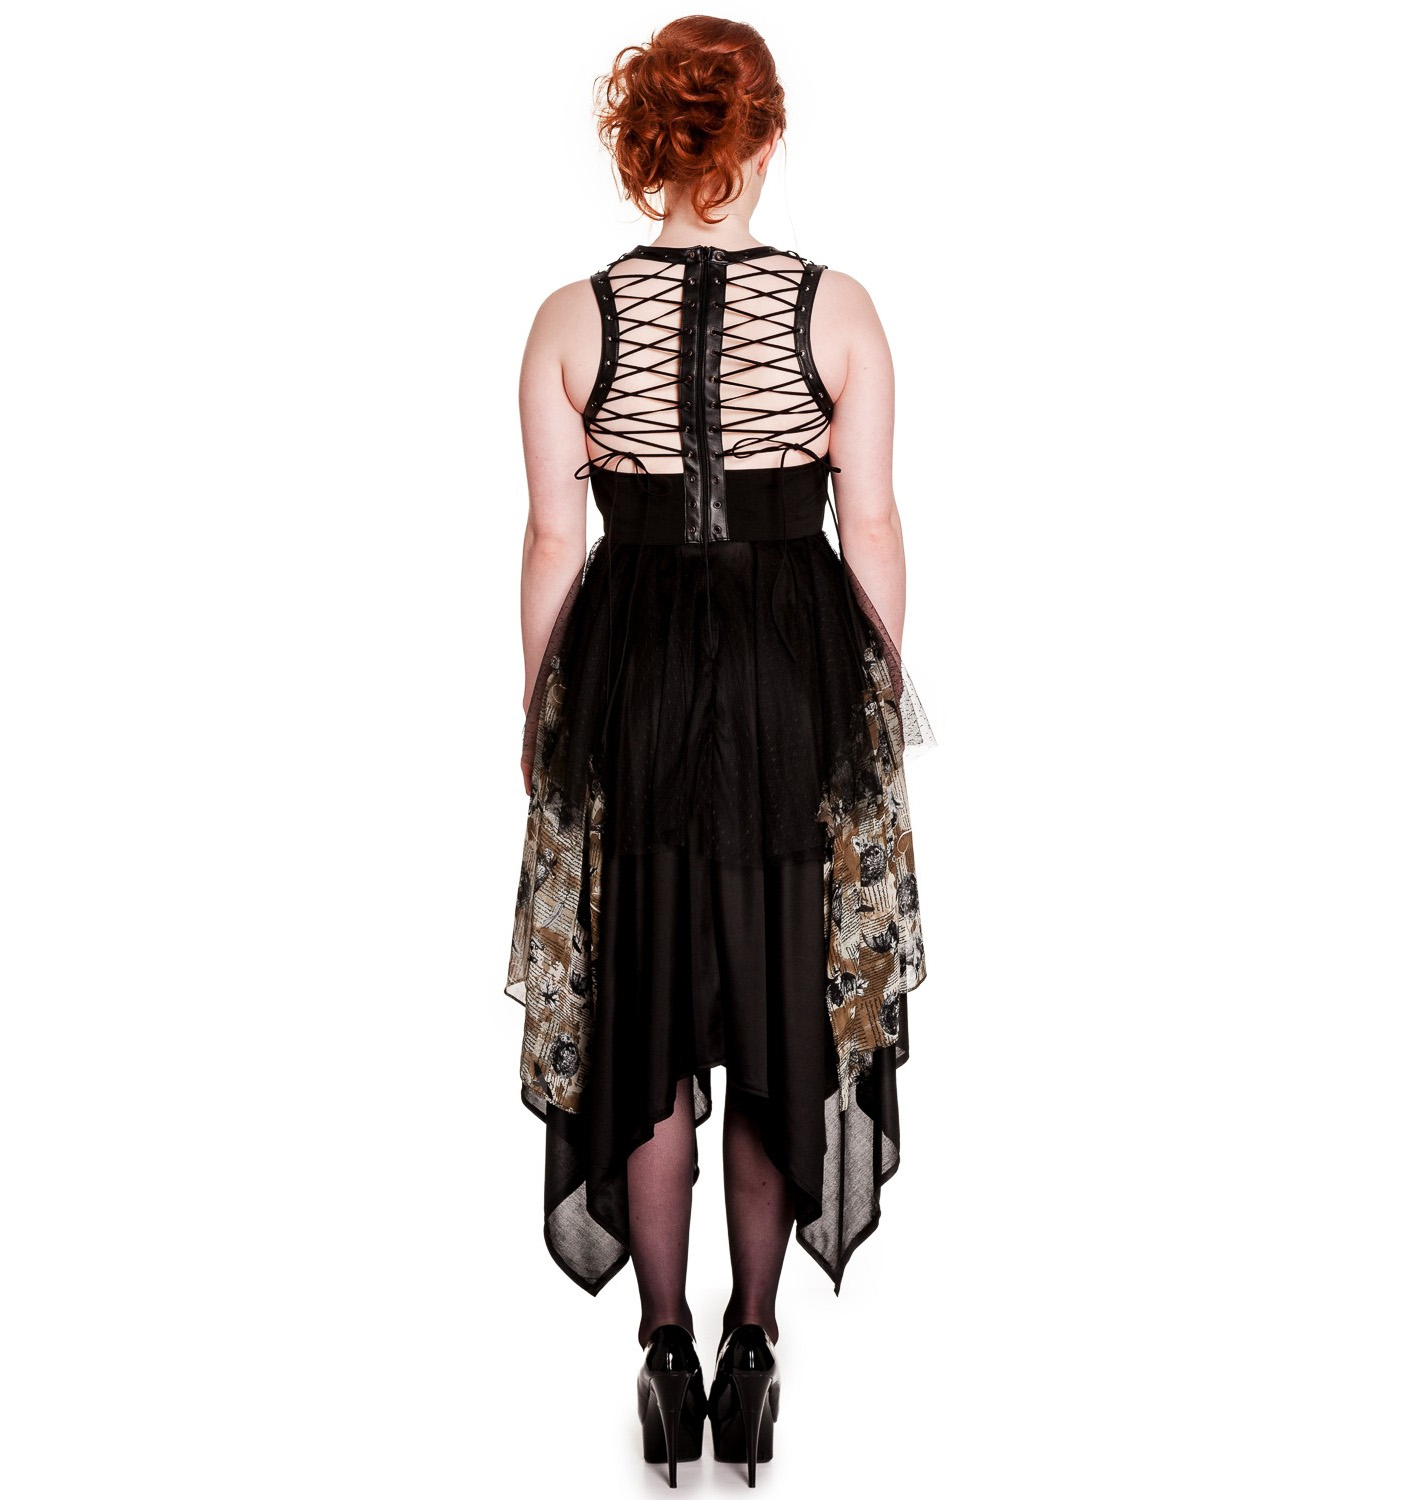 Hell-Bunny-Spin-Doctor-Goth-Black-Dress-ECLIPSE-Grunge-Steampunk-All-Sizes thumbnail 13